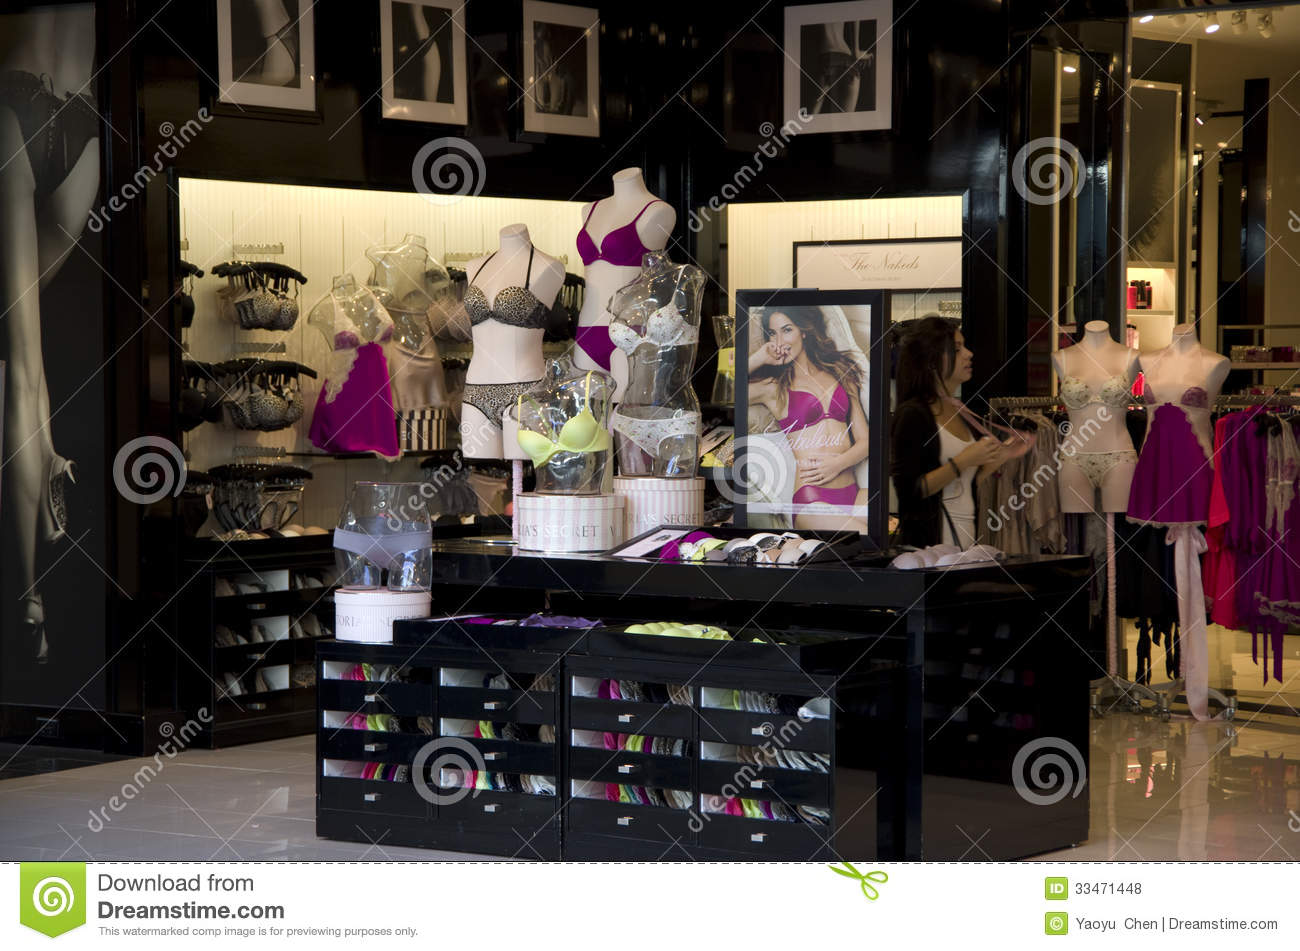 Royalty Free Stock Photos Victoria S Secret Underwear Store Bellevue Square Seattle Has Very Nice Interiors No One Could Pass Door Peeking Image33471448 on Clothing Store Interior Design